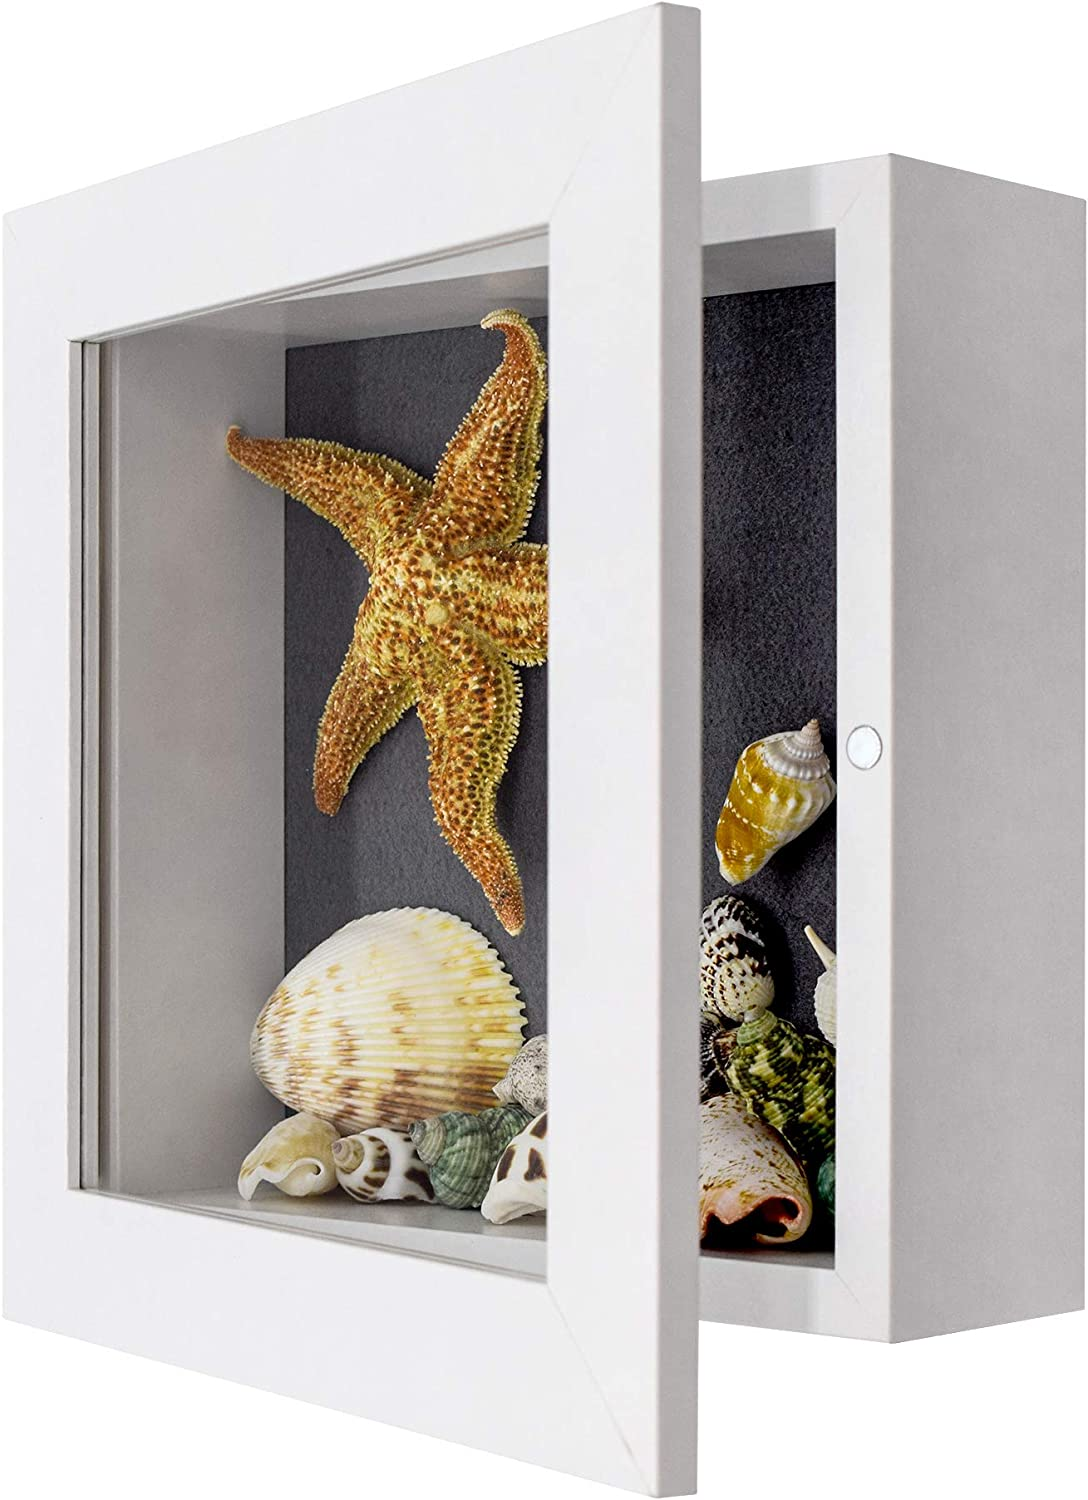 Golden State Art, Shadow Box Frame Display Case, 2-inch Depth, Great for Collages, Collections, Mementos (8x8, White)